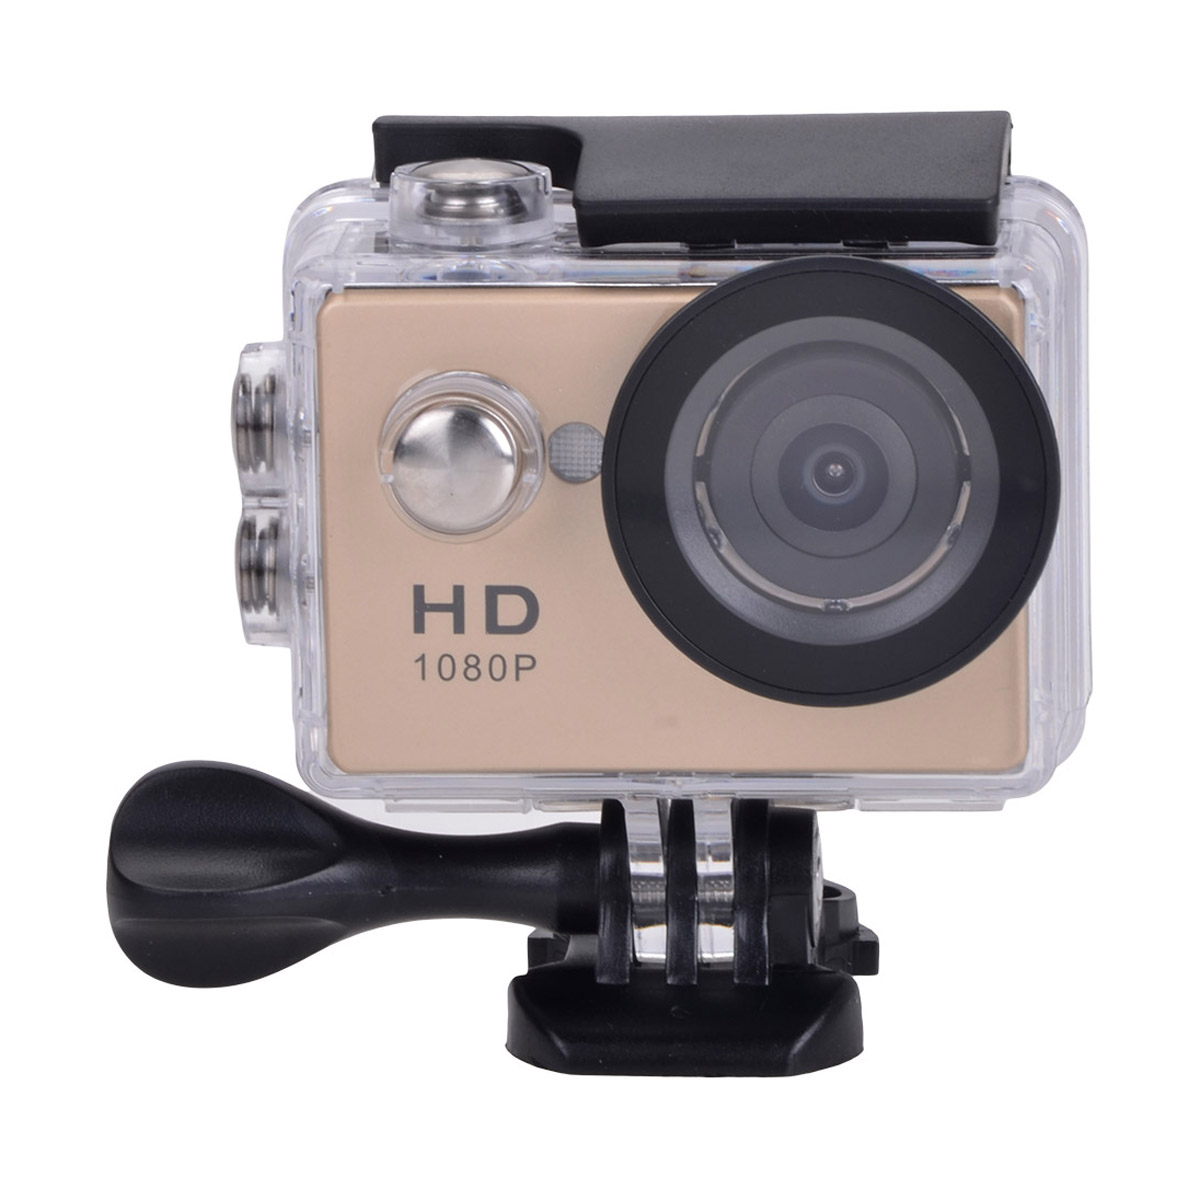 "HD 1080P 2"" LCD Waterproof 5.0MP Camcorder Sports Camera 5.0MP Action Camcorder - Champagne Gold"